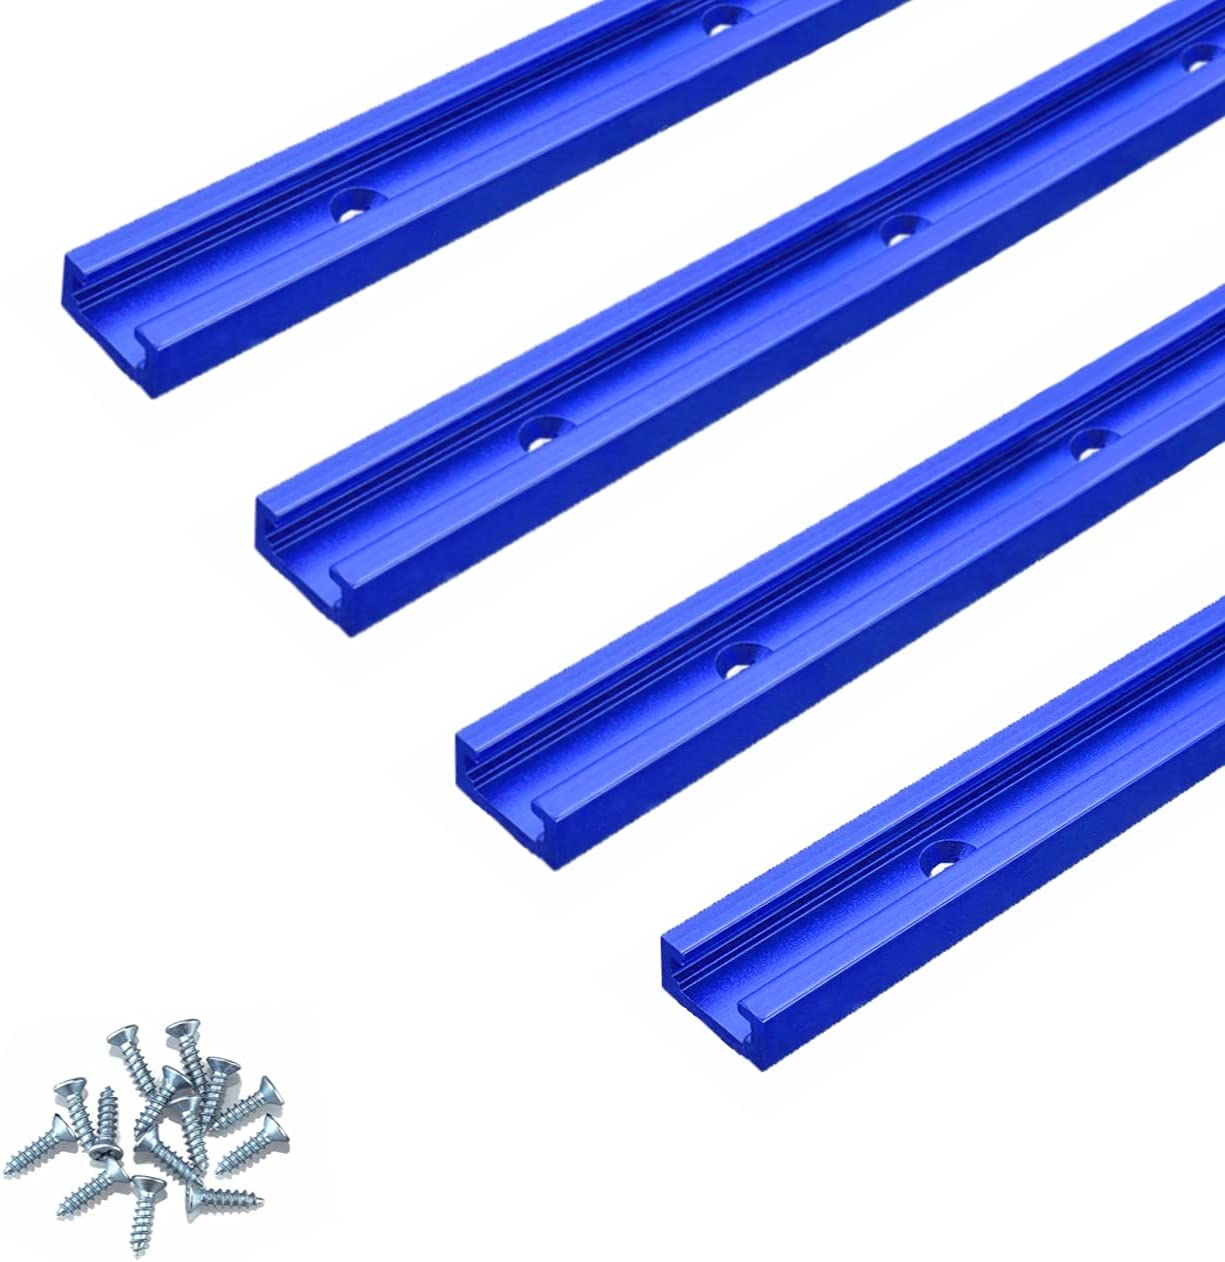 Now free shipping ZOKMOK 48'' T-Tracks for Woodworking 67% OFF of fixed price 4 Universa Predrilled Pack